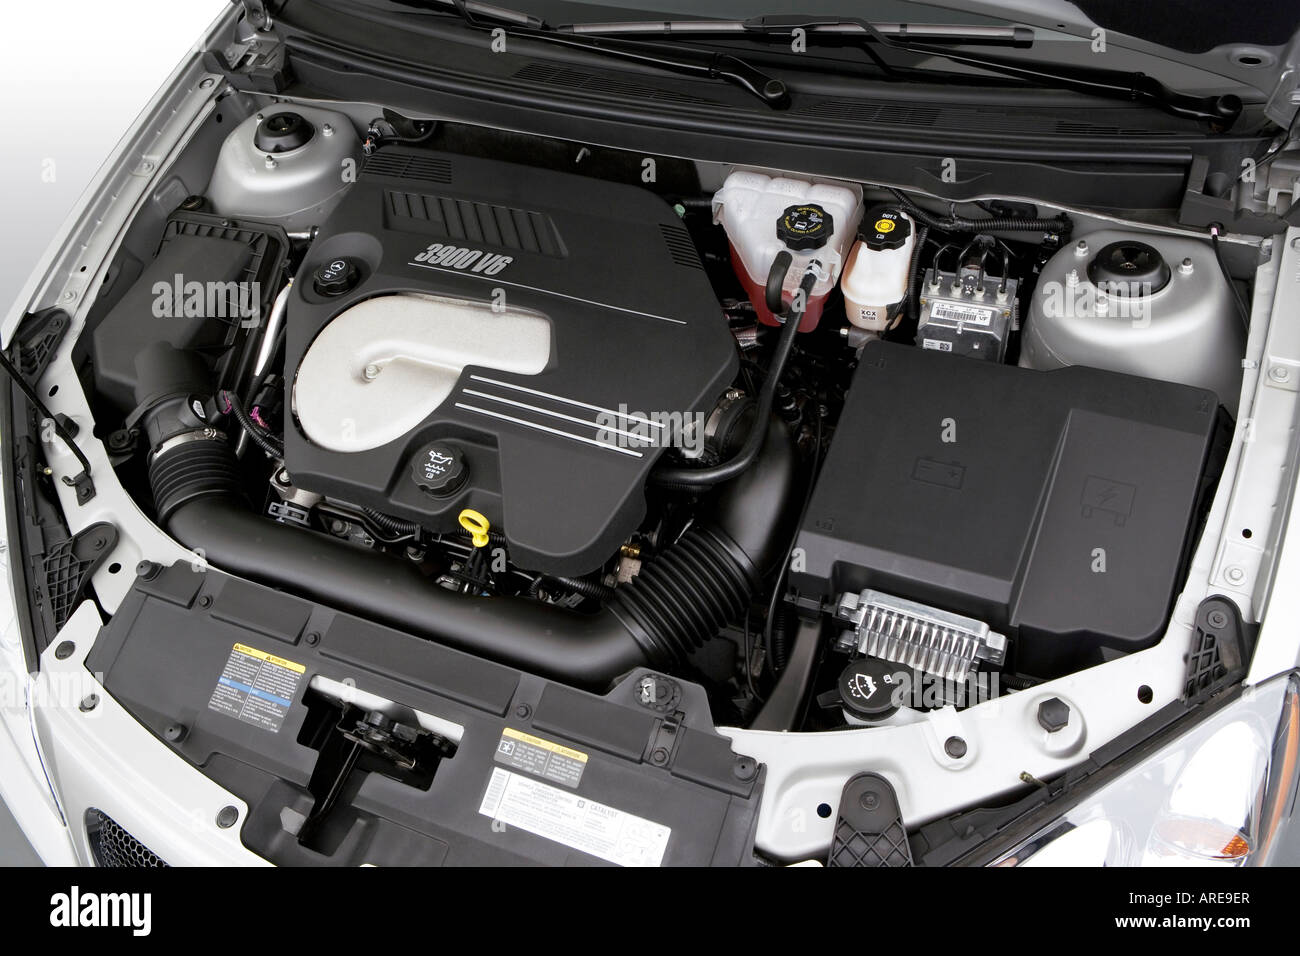 2006 Pontiac G6 GTP in Silver - Engine Stock Photo ...